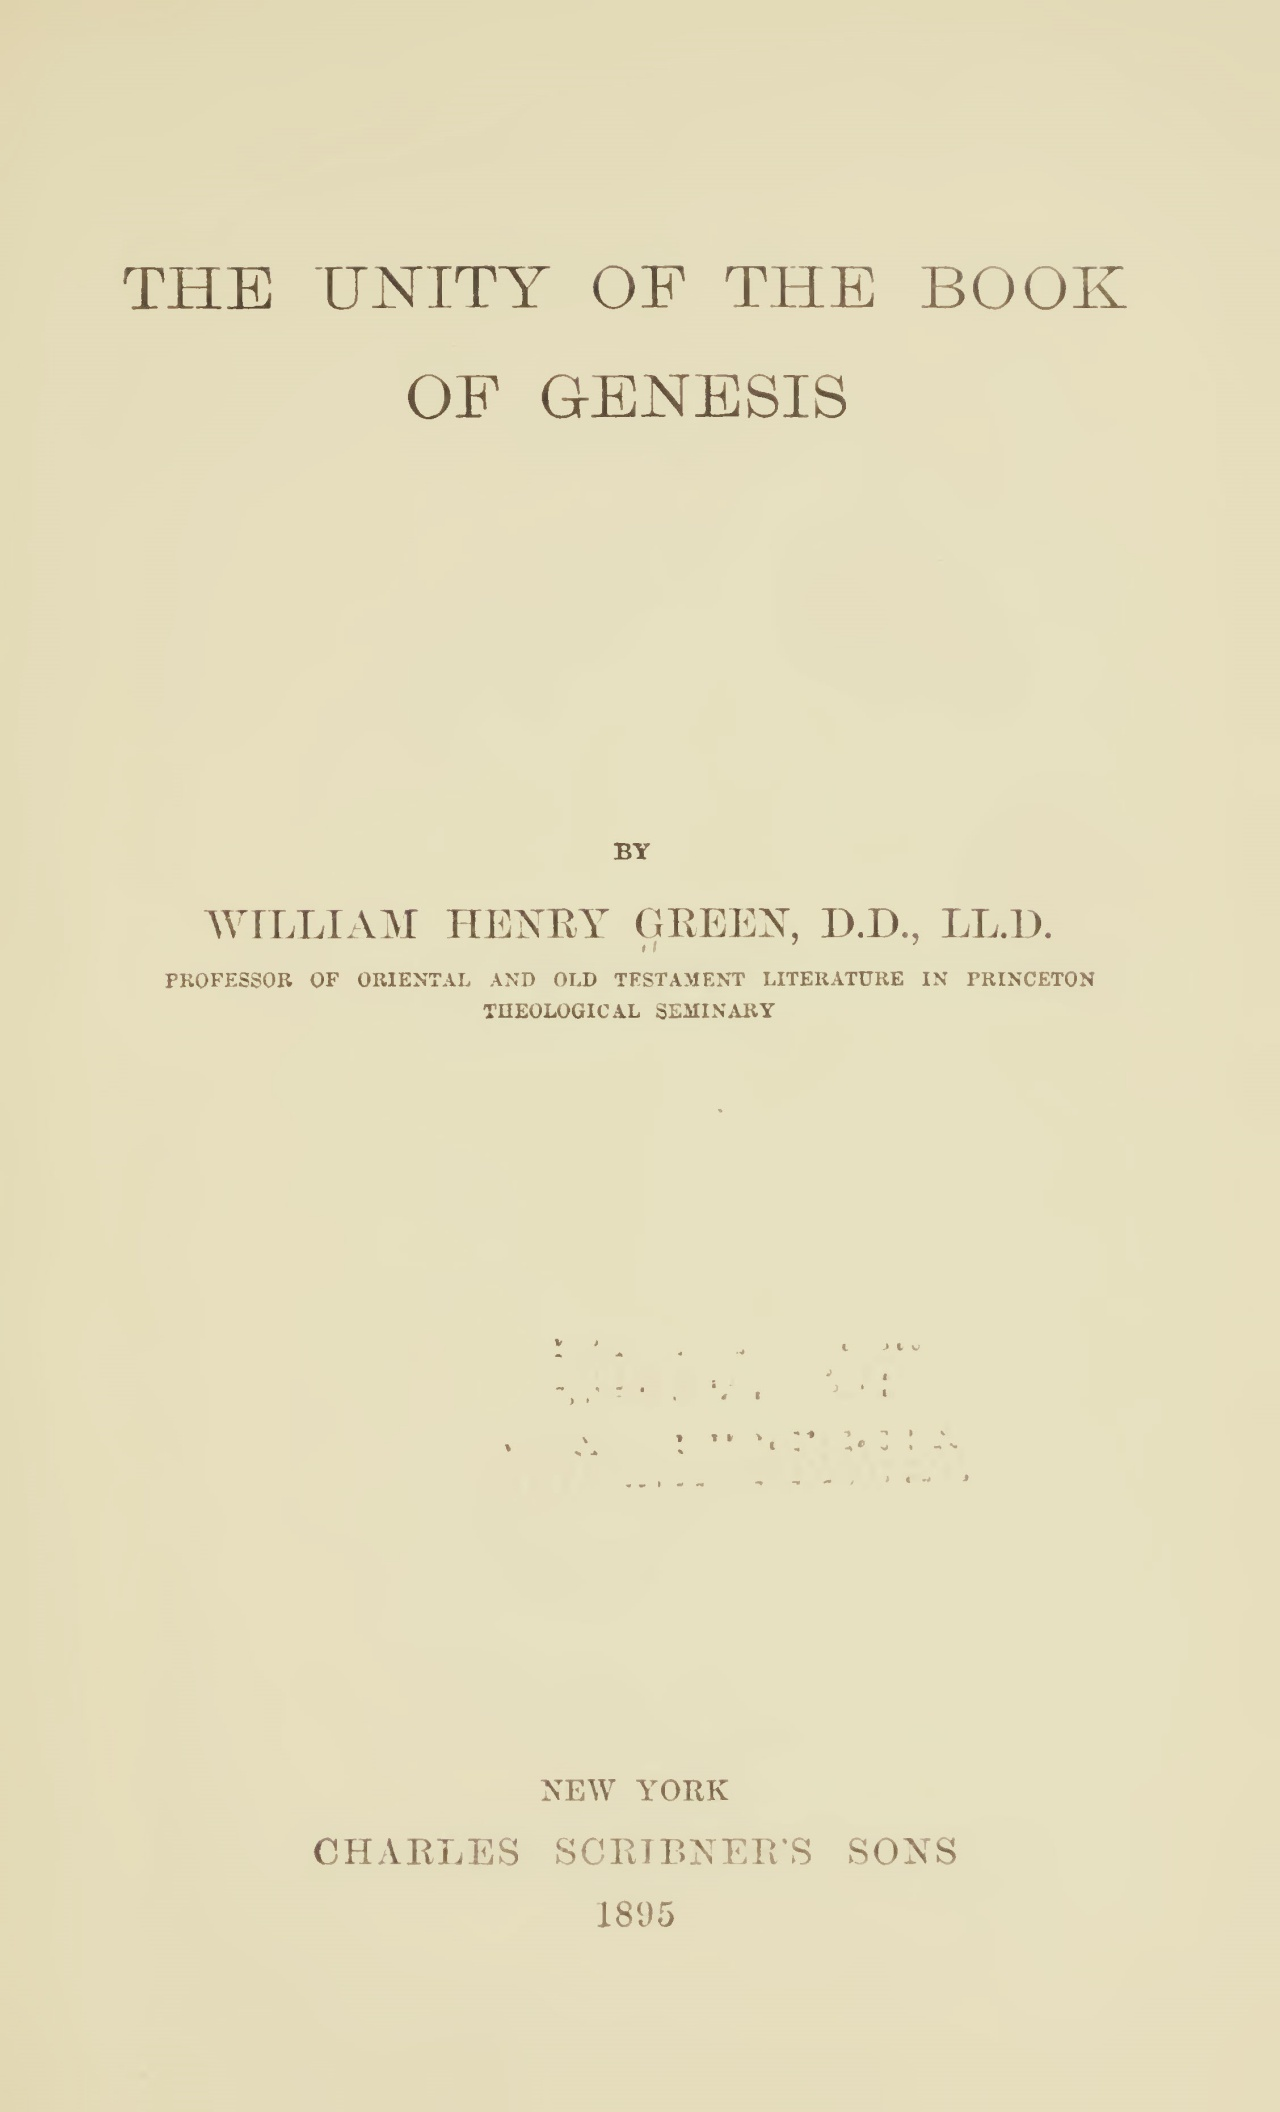 Green, William Henry, The Unity of the Book of Genesis Title Page.jpg